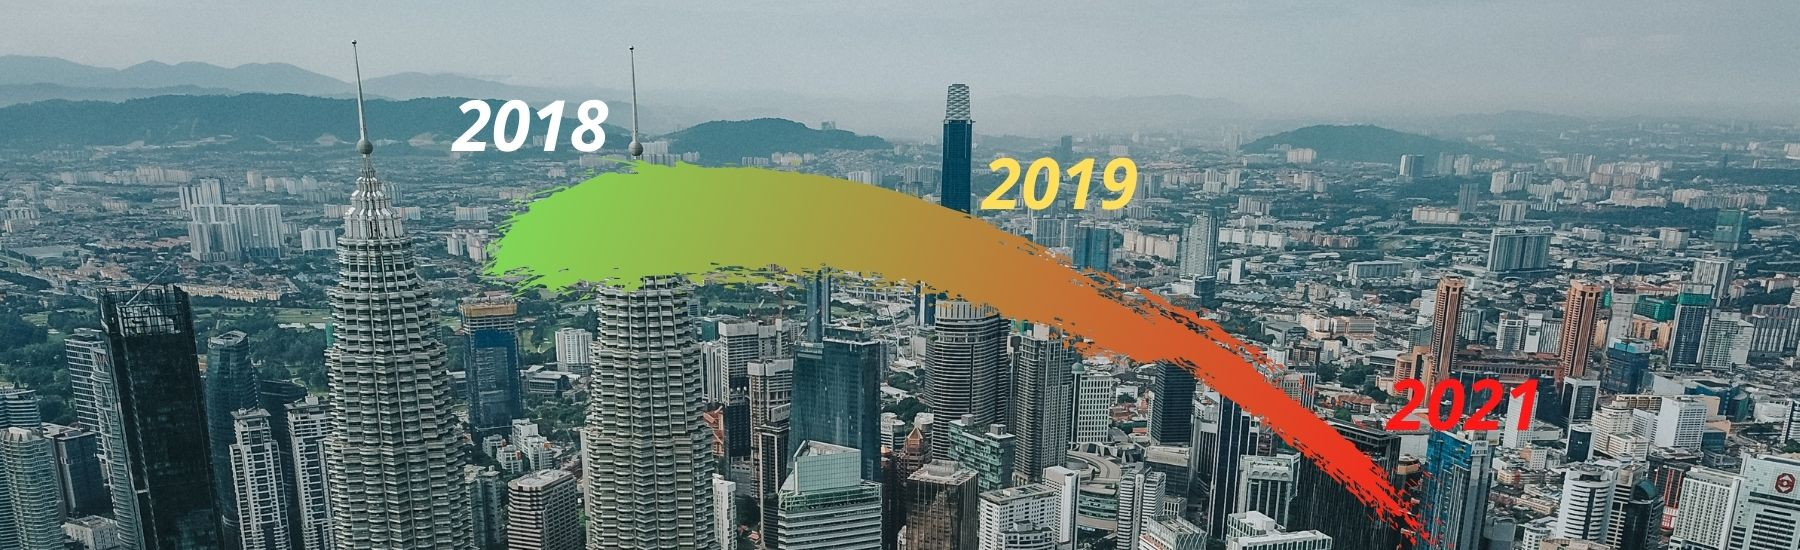 Malaysia Property Market 2020-2021: Affordable Homes Paradox And The Burst!